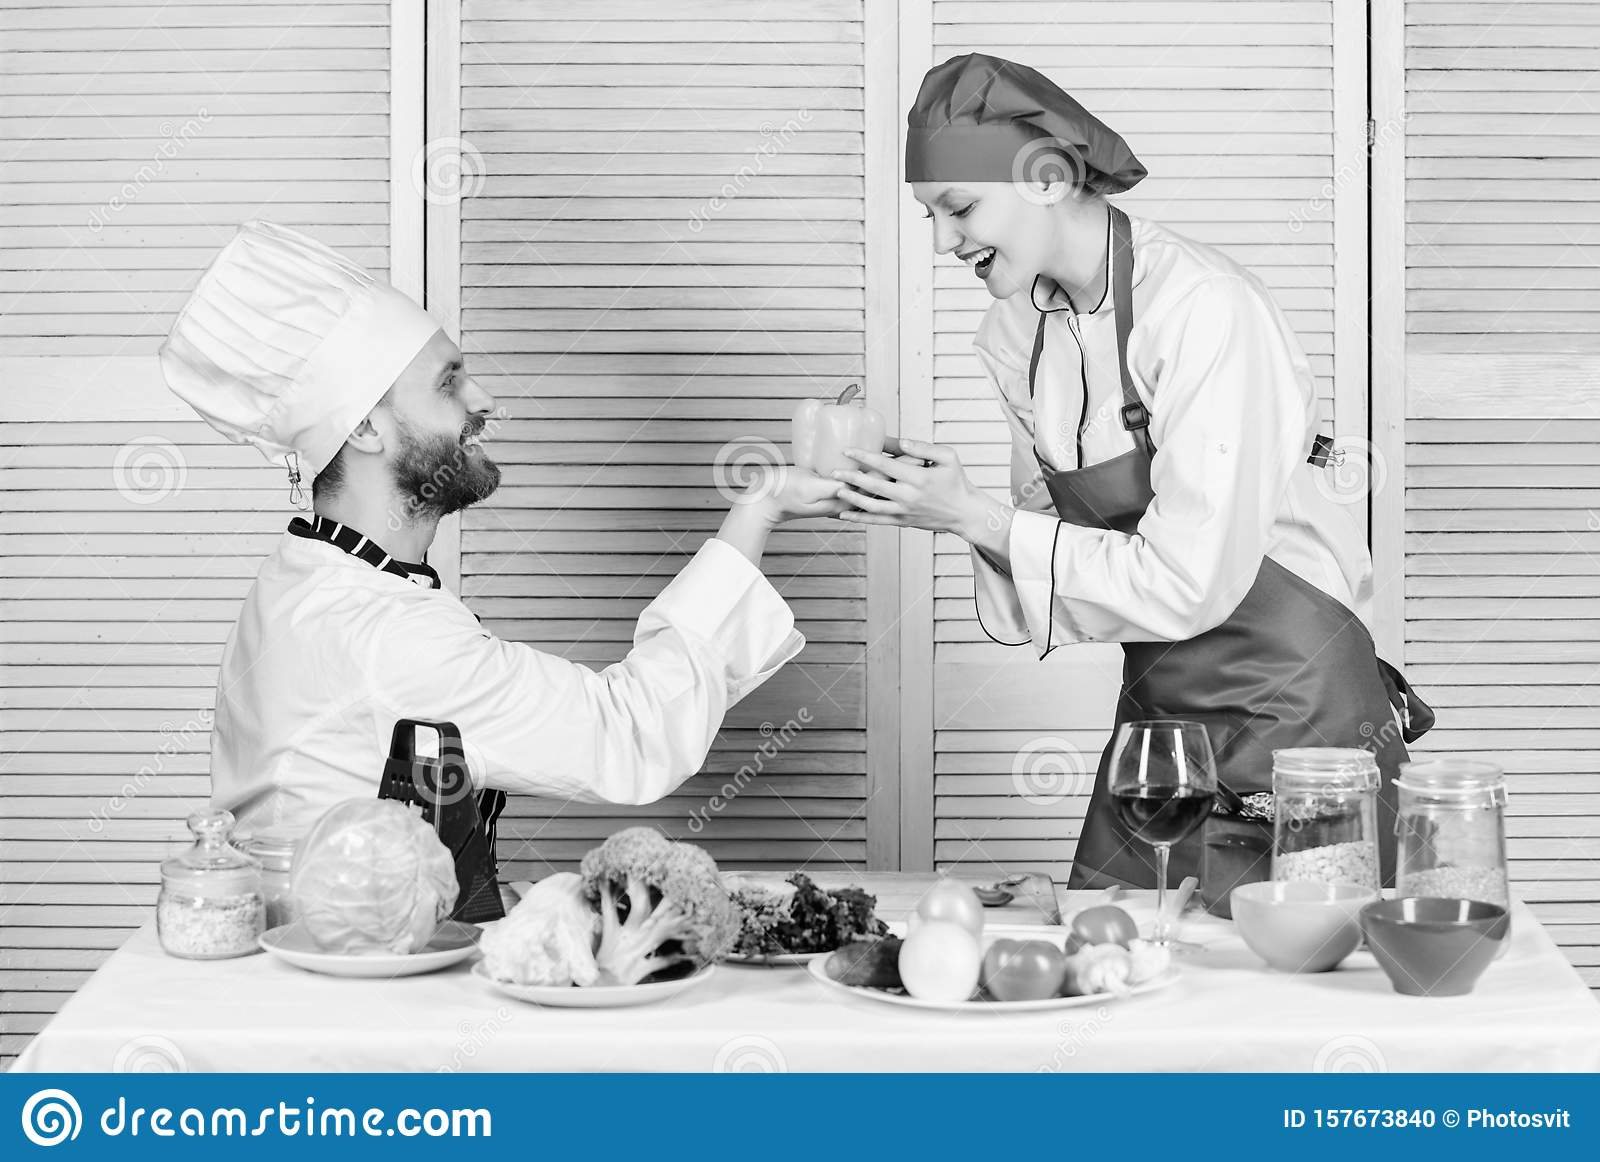 Cooking healthy. vegetarian. cook uniform. happy couple in love with healthy food. man and woman chef in restaurant